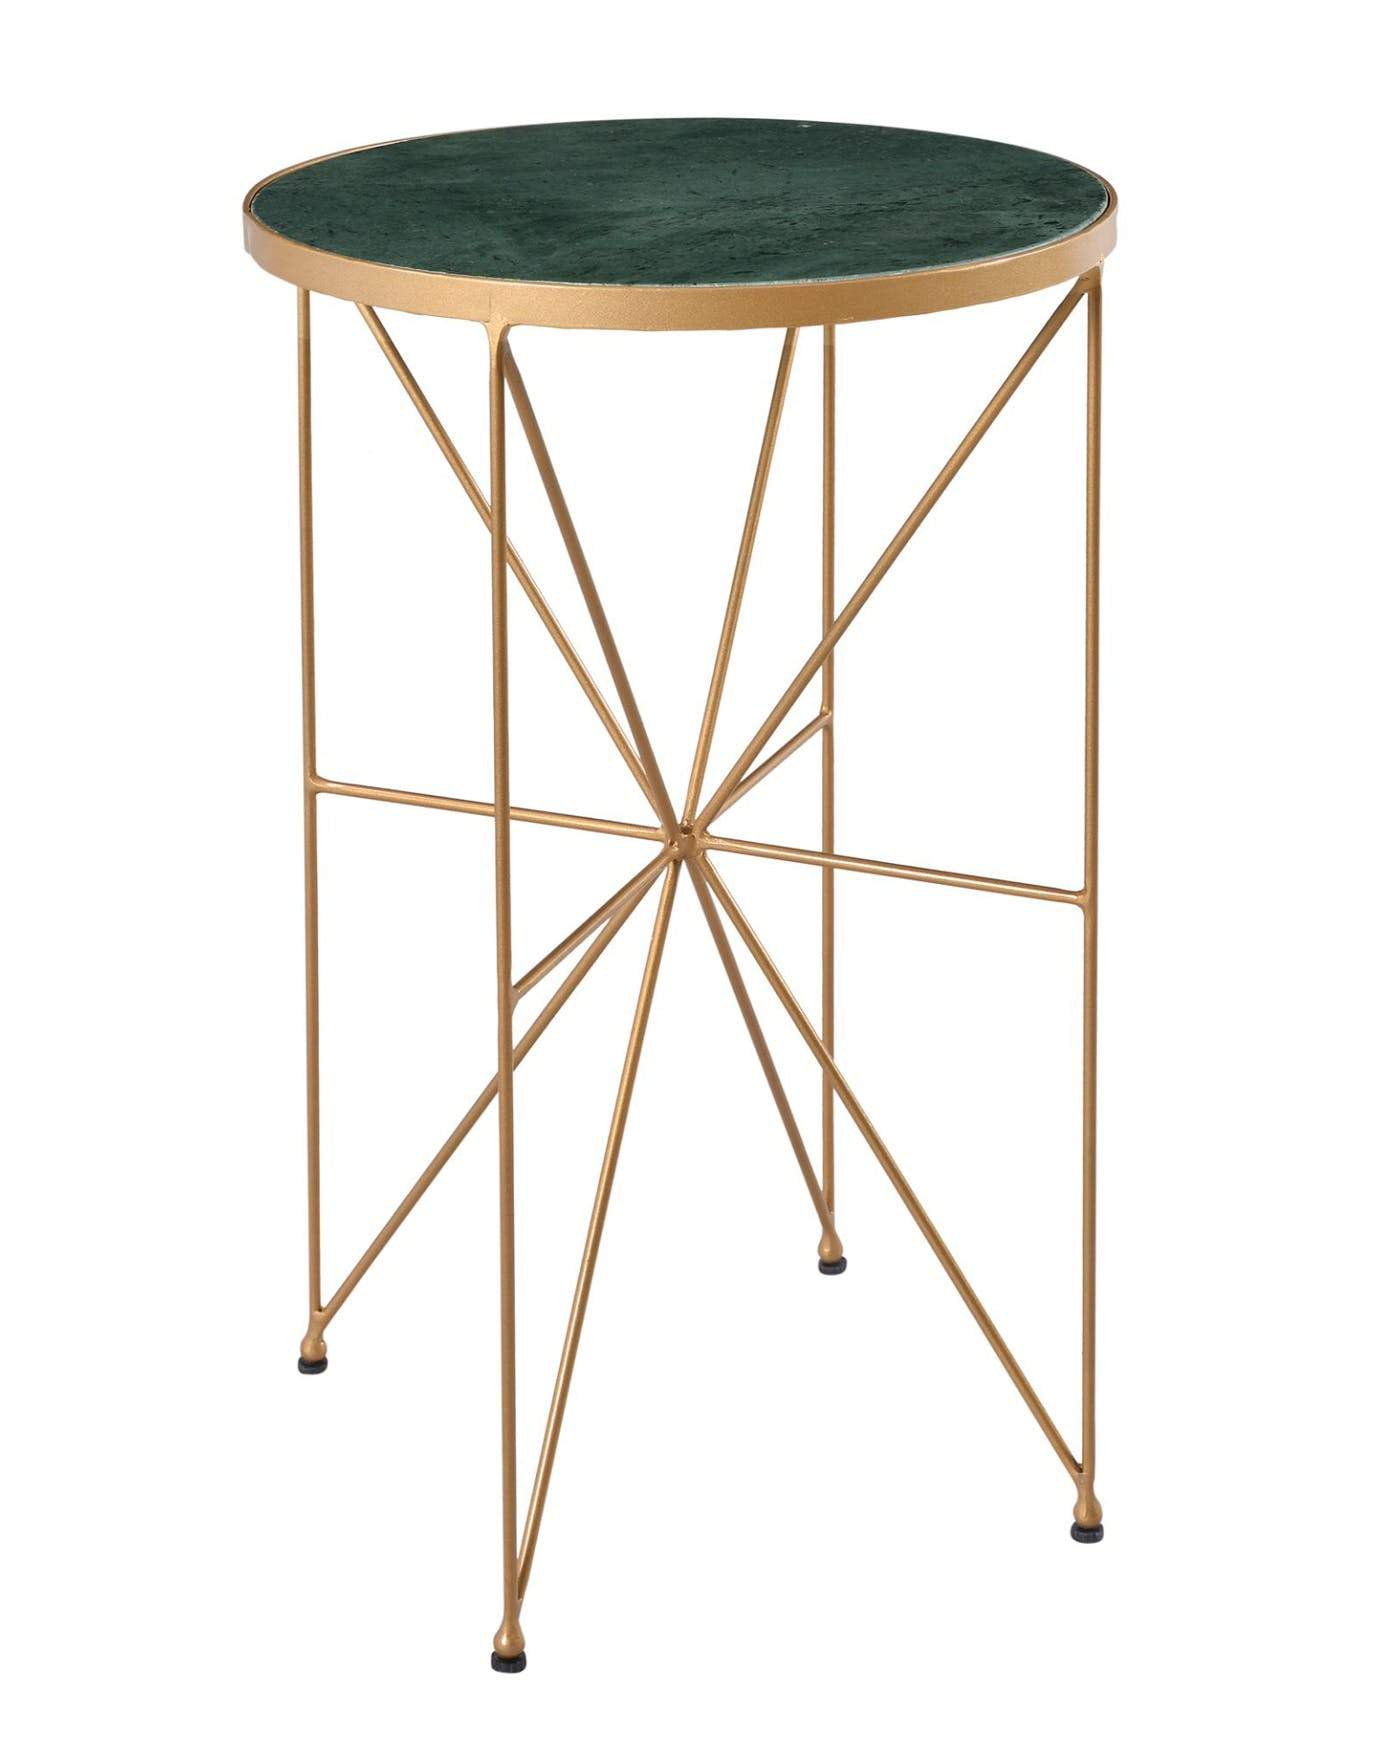 marble top accent table furniture fair metal luxury placemats slide bolt lock wrought iron patio side jcpenney bag west elm off code modern couch small dining gallerie pillows